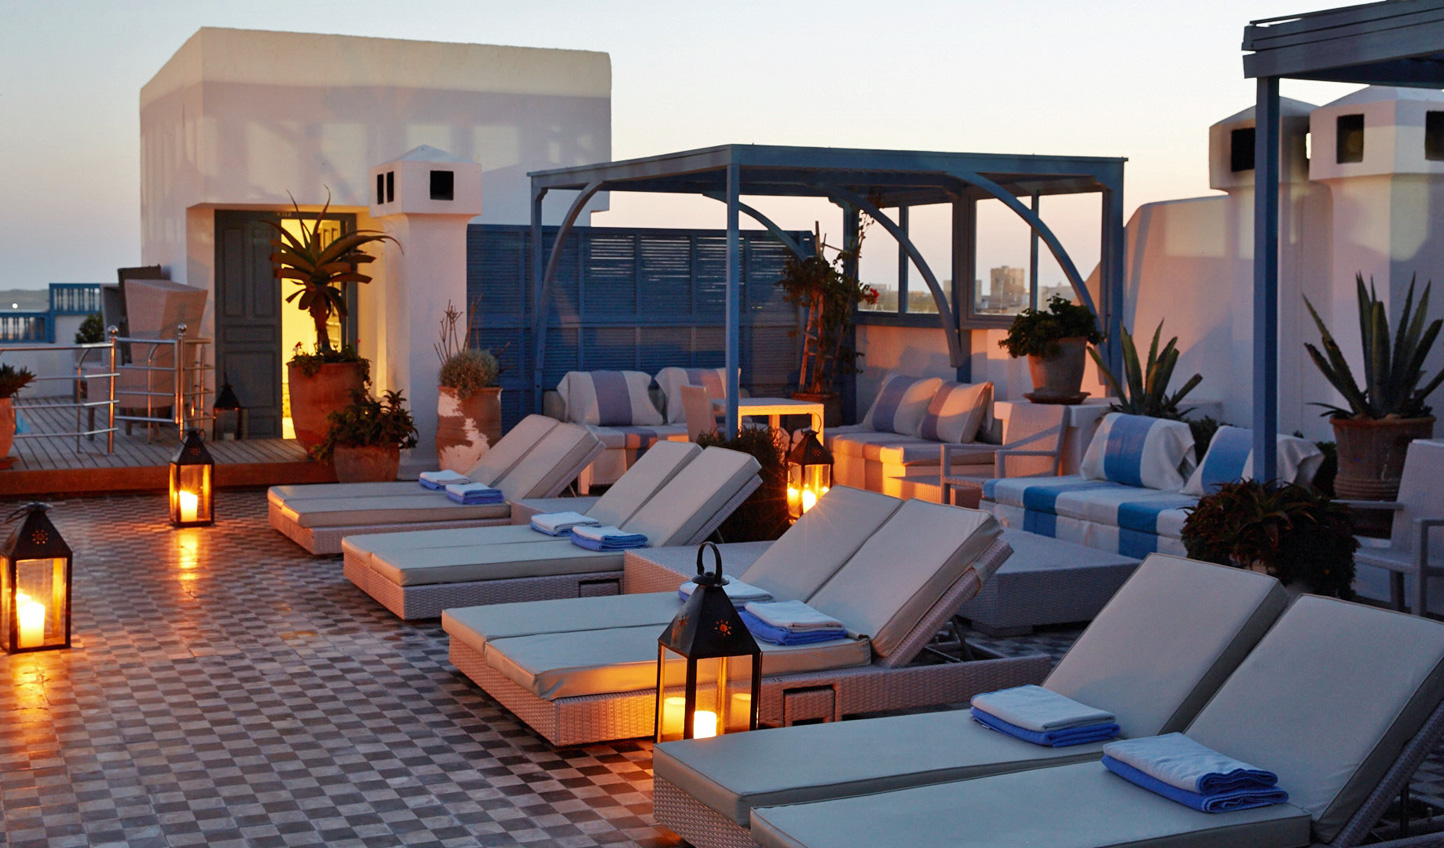 Head to the rooftop to catch the sunset dipping into the Ocean